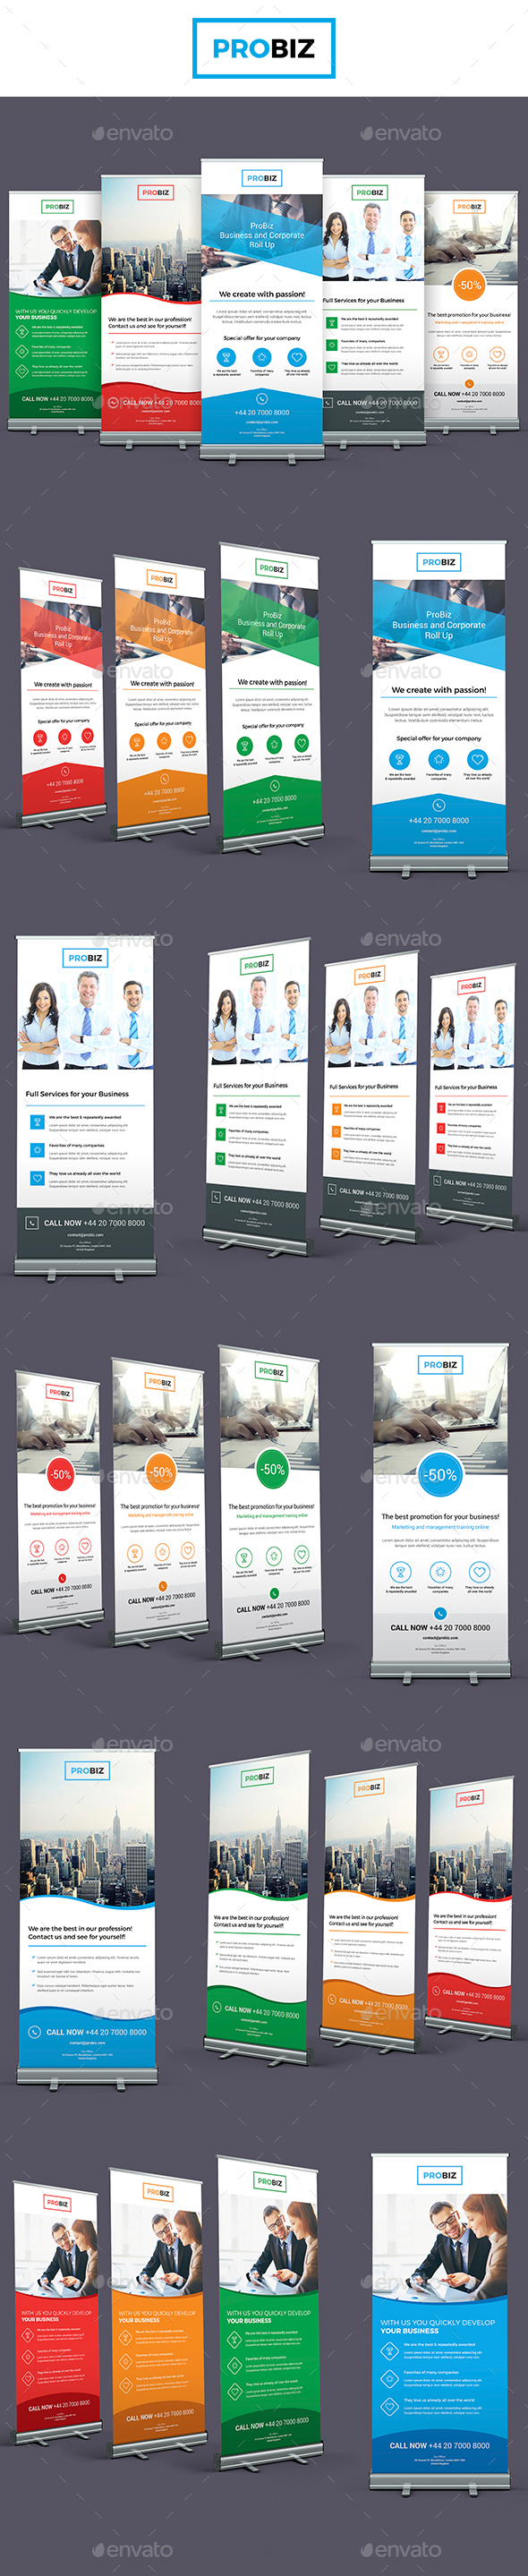 ProBiz – Business and Corporate Roll Up Banners - Signage Print Templates